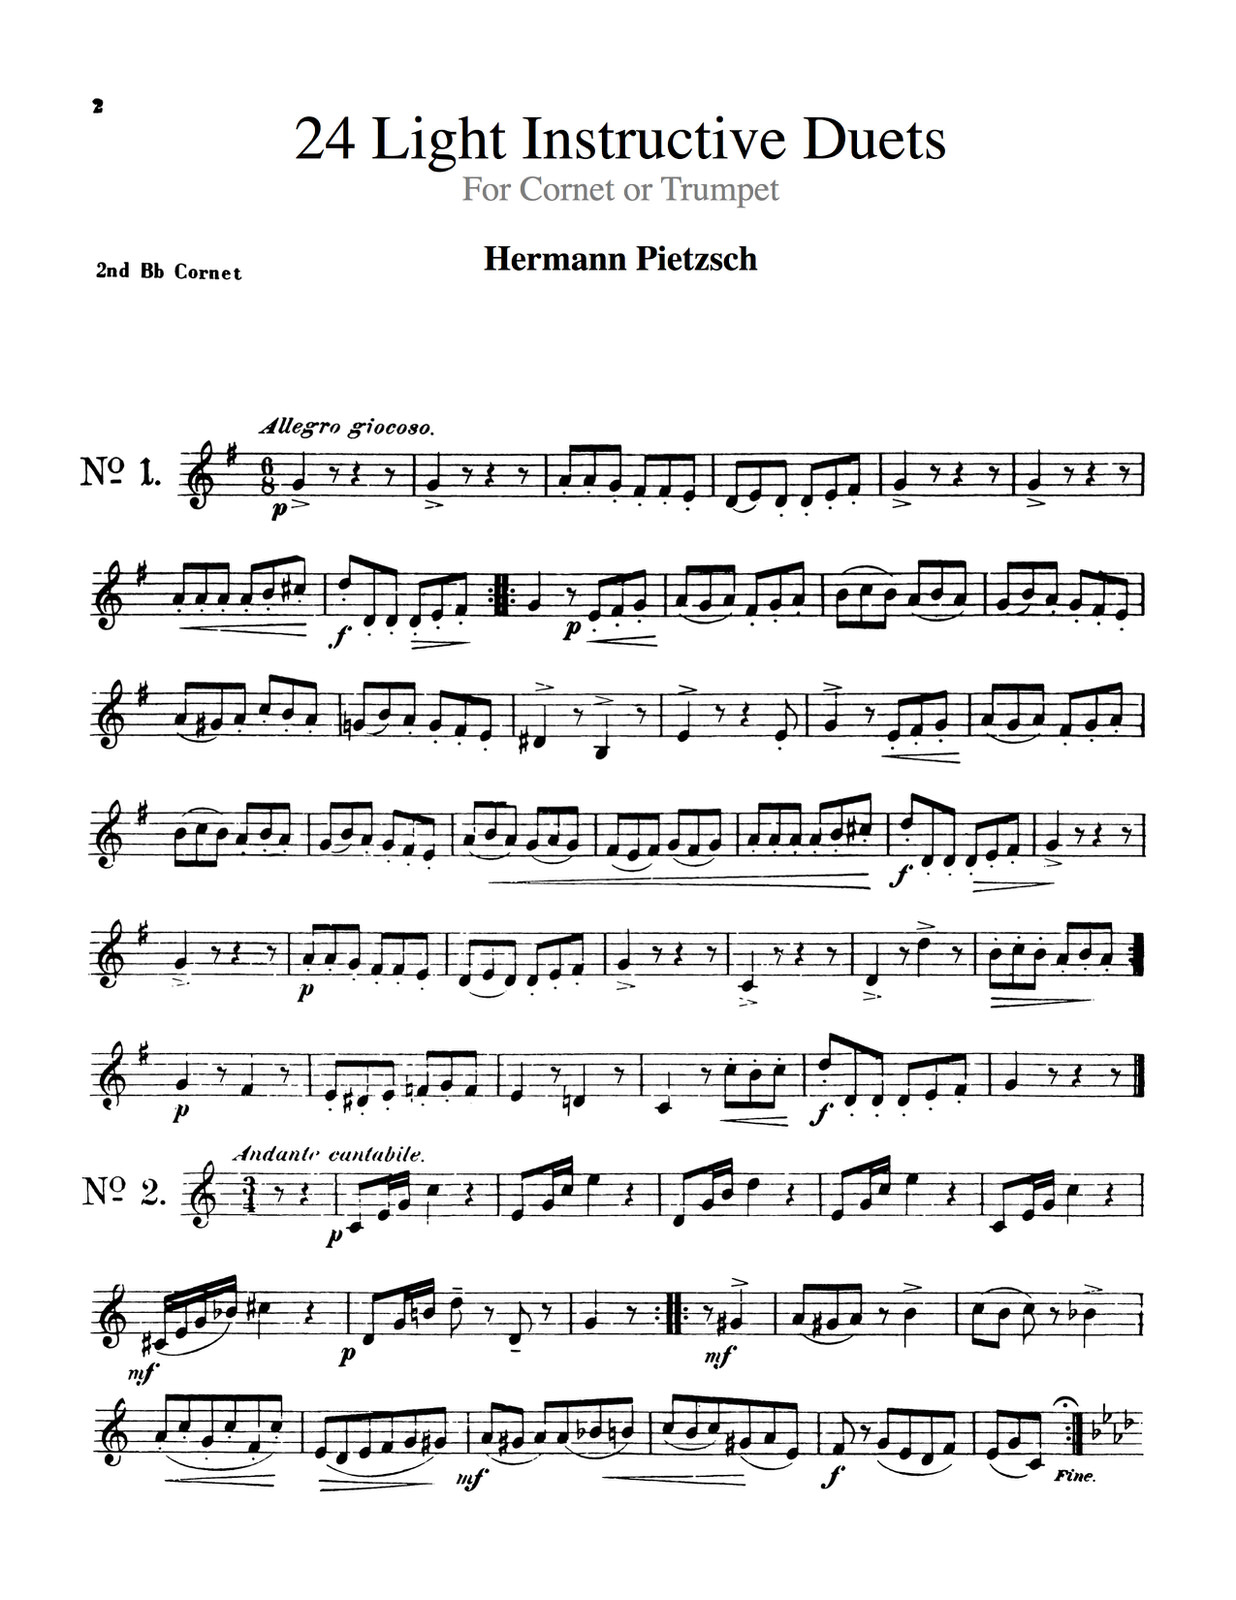 Pietzsch, 24 Light Instructive Duets Trumpet 2 4